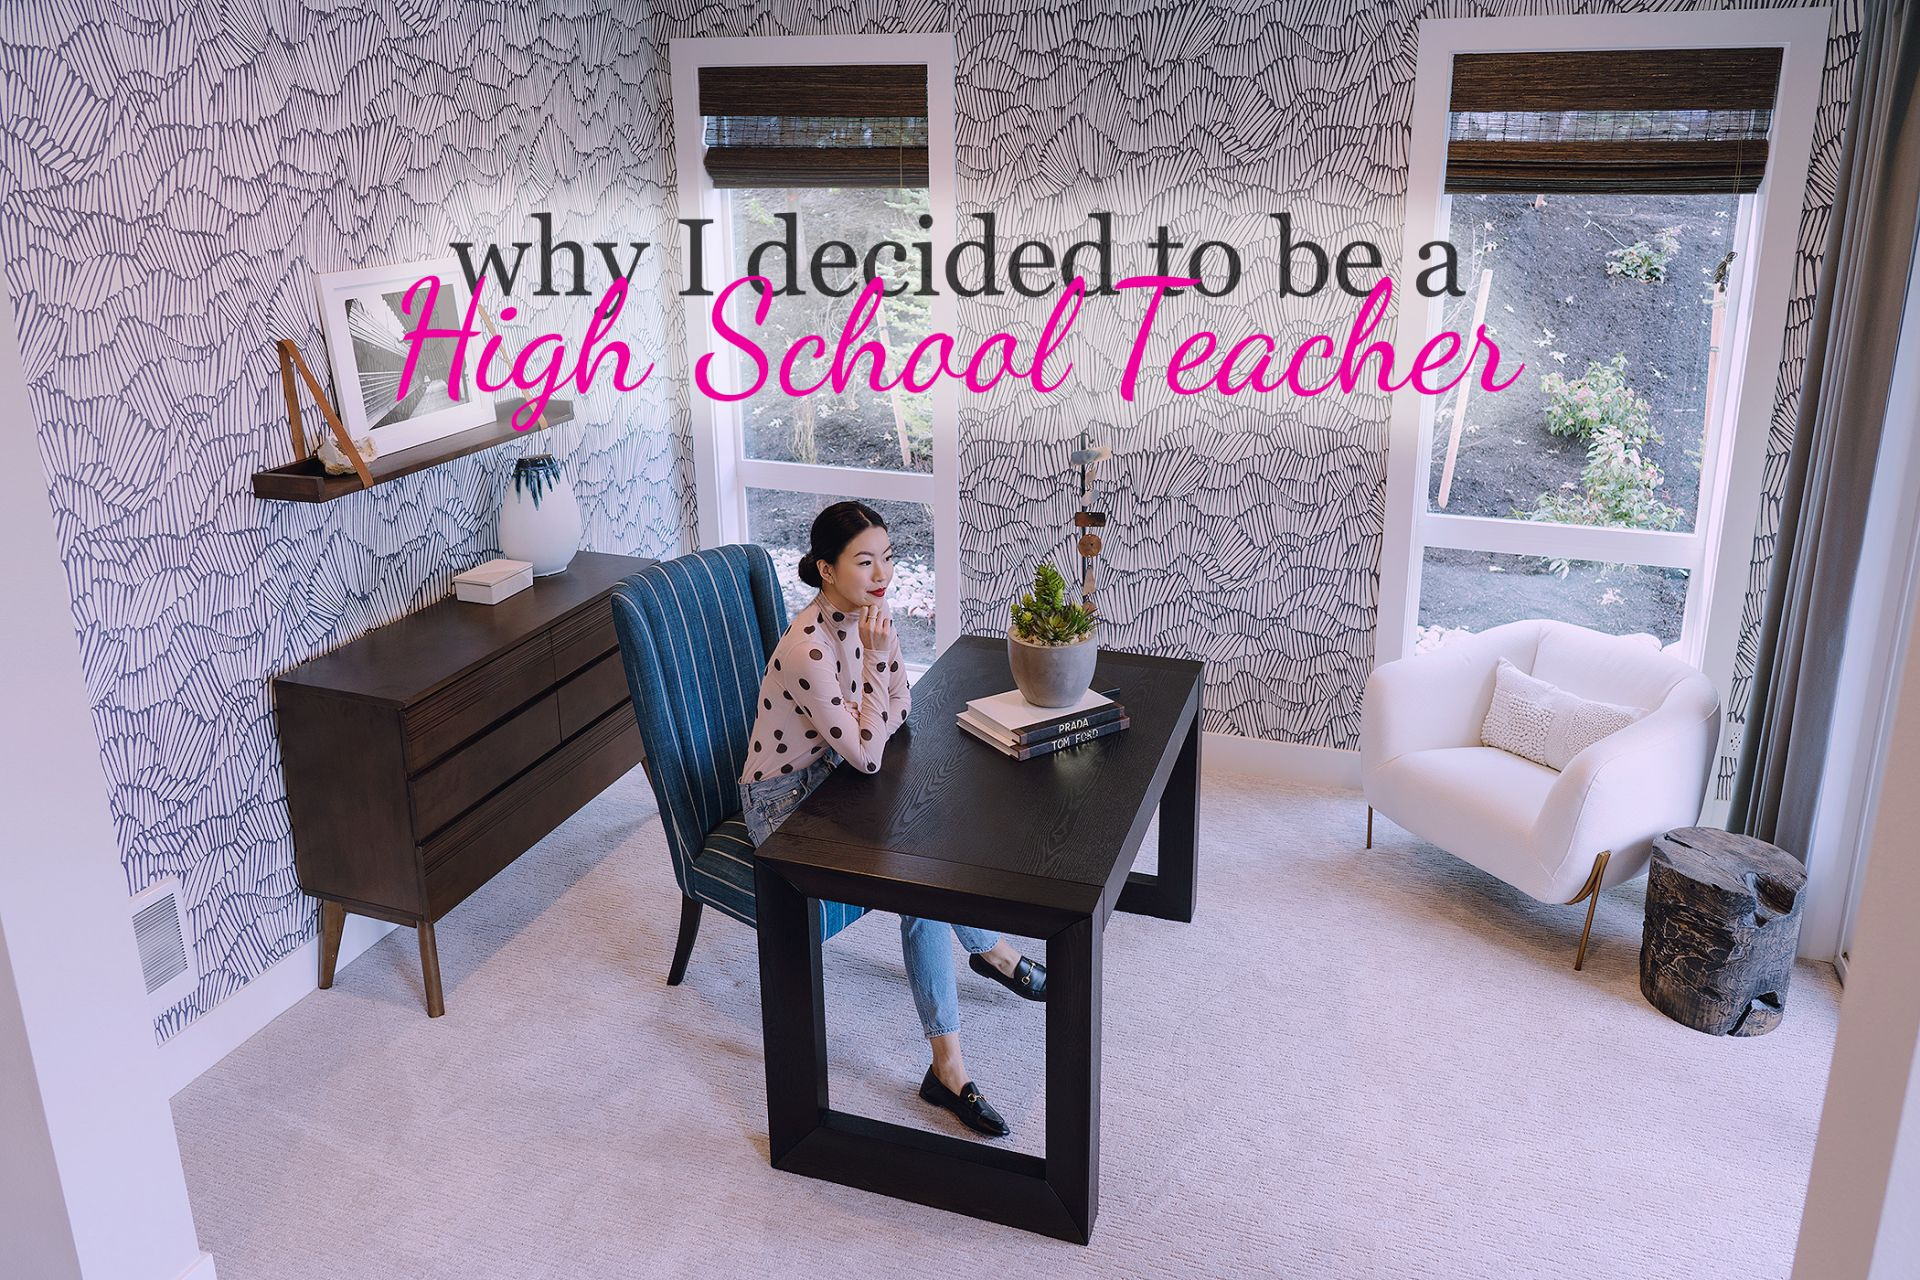 why I decided to be a high school teacher